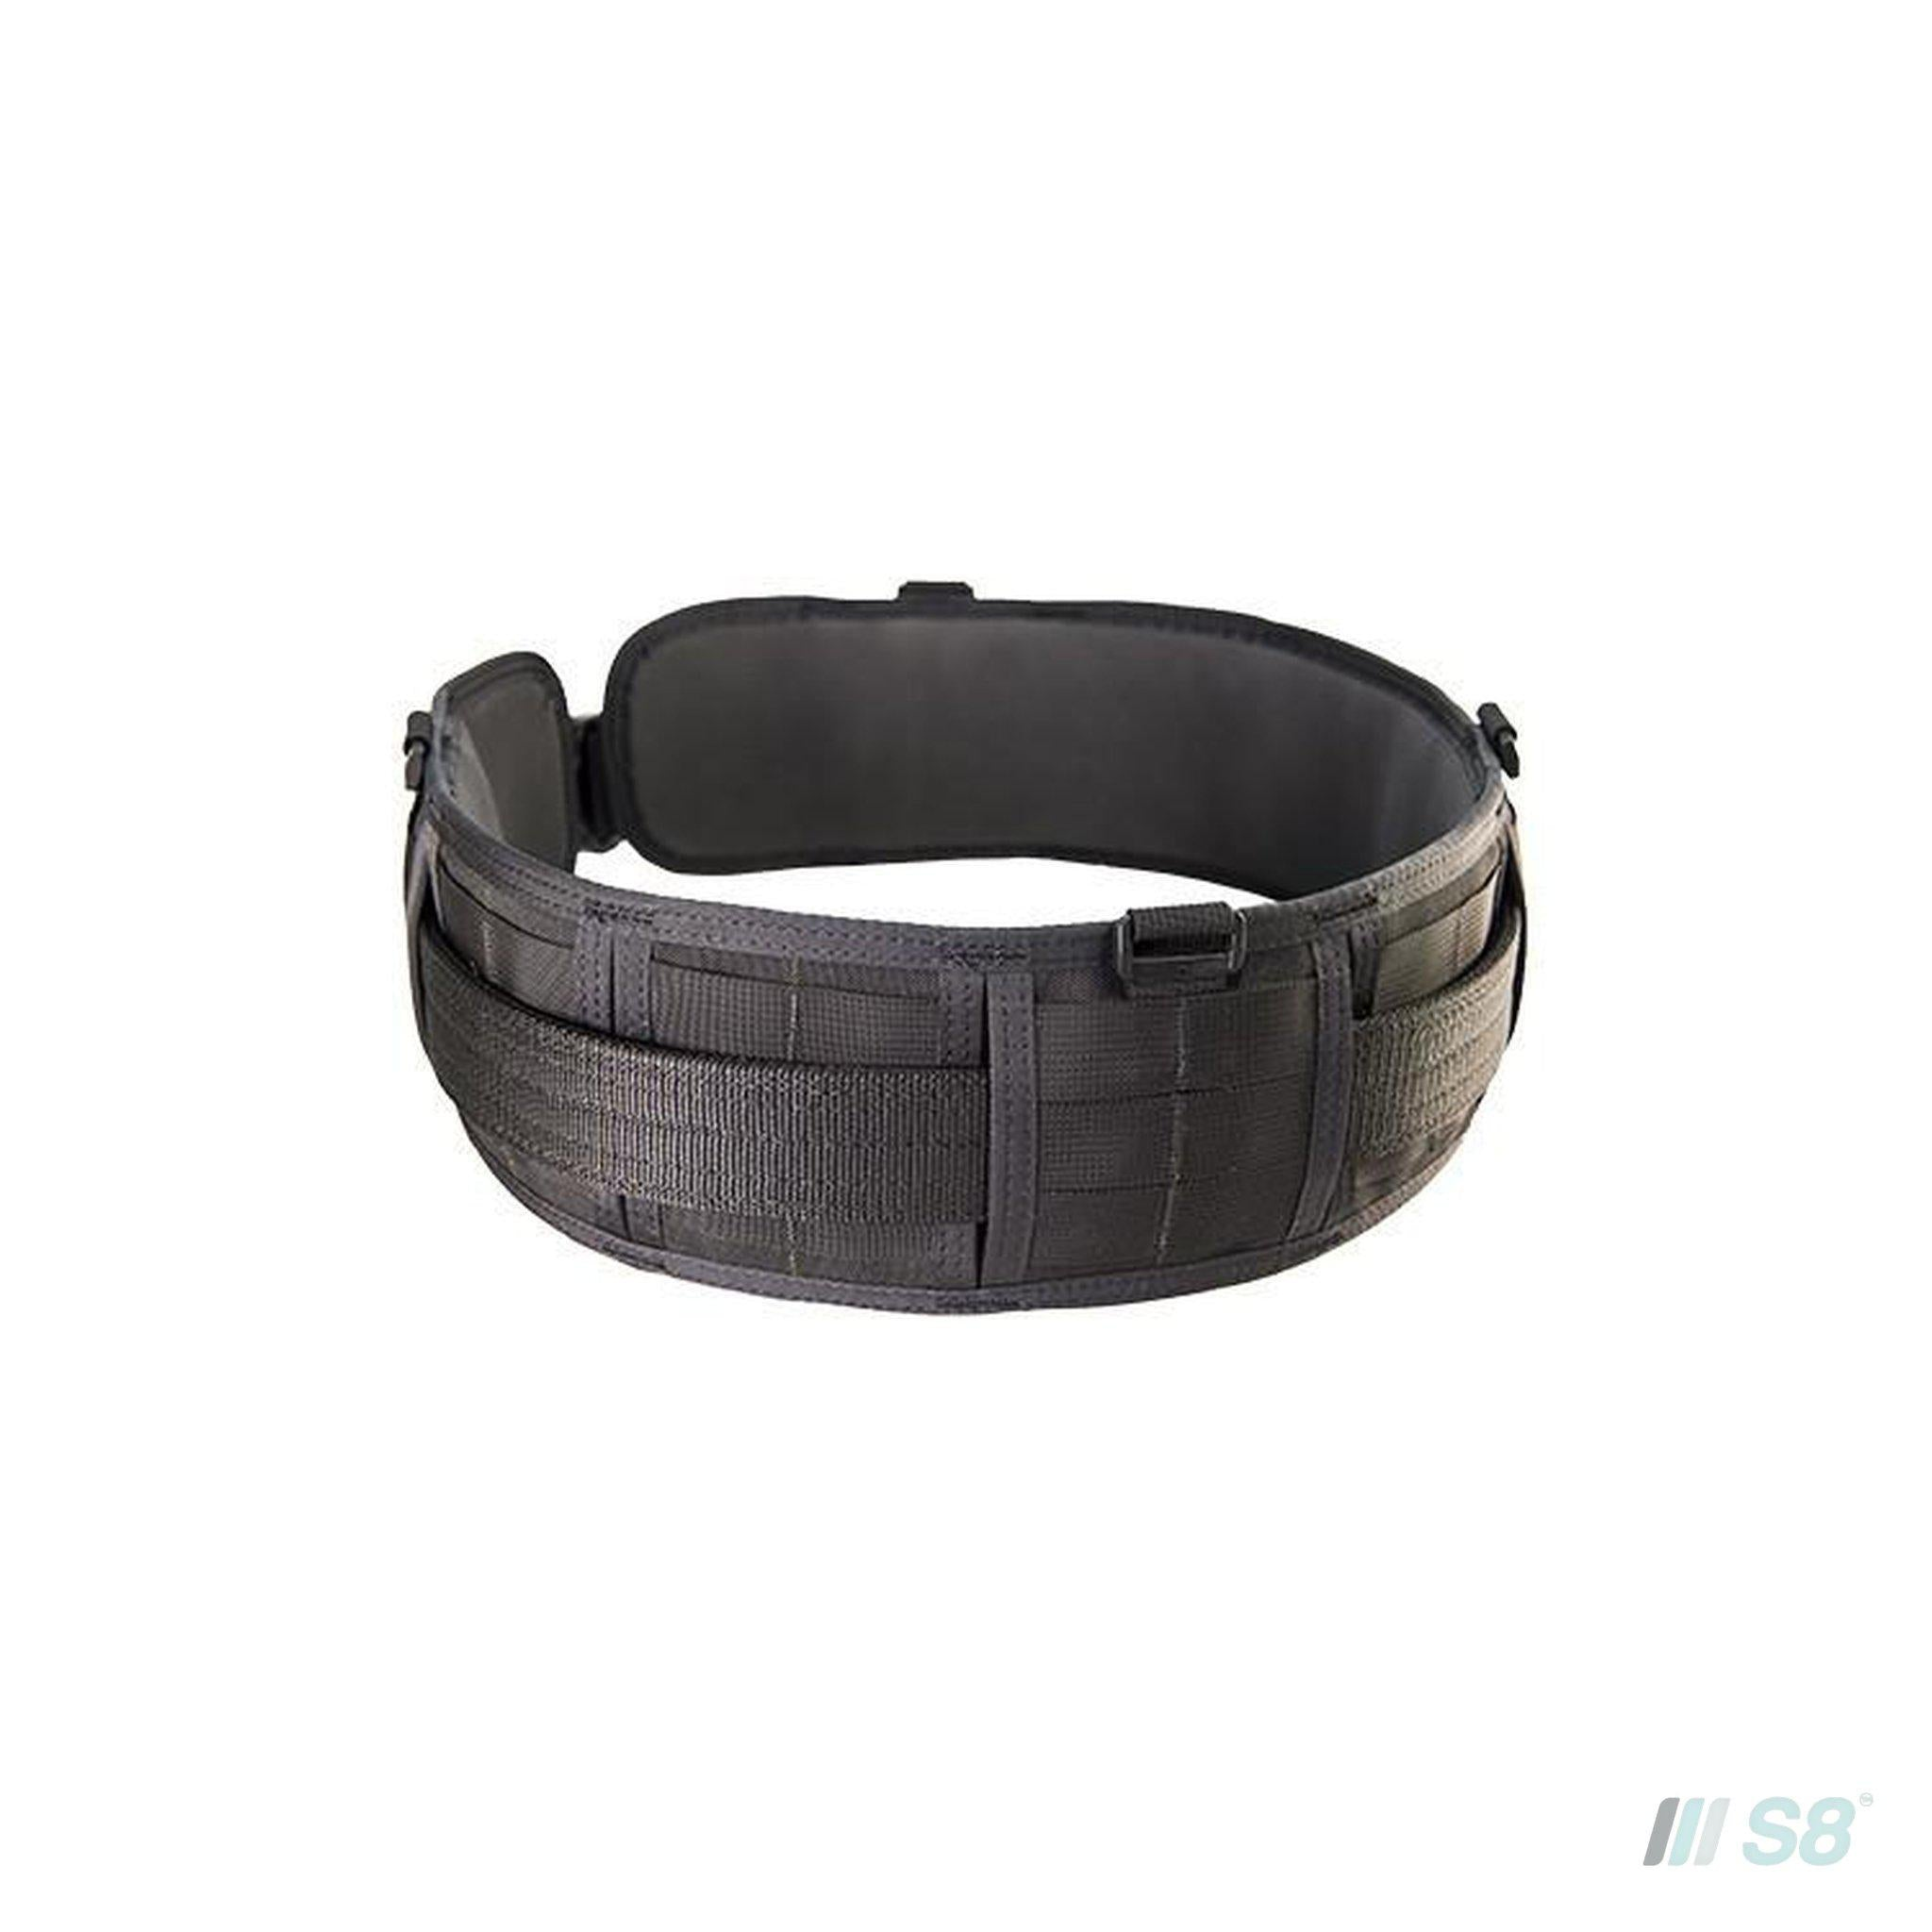 HSGI -Sure-Grip® Padded Belt - Slotted-HSGI-S8 Products Group